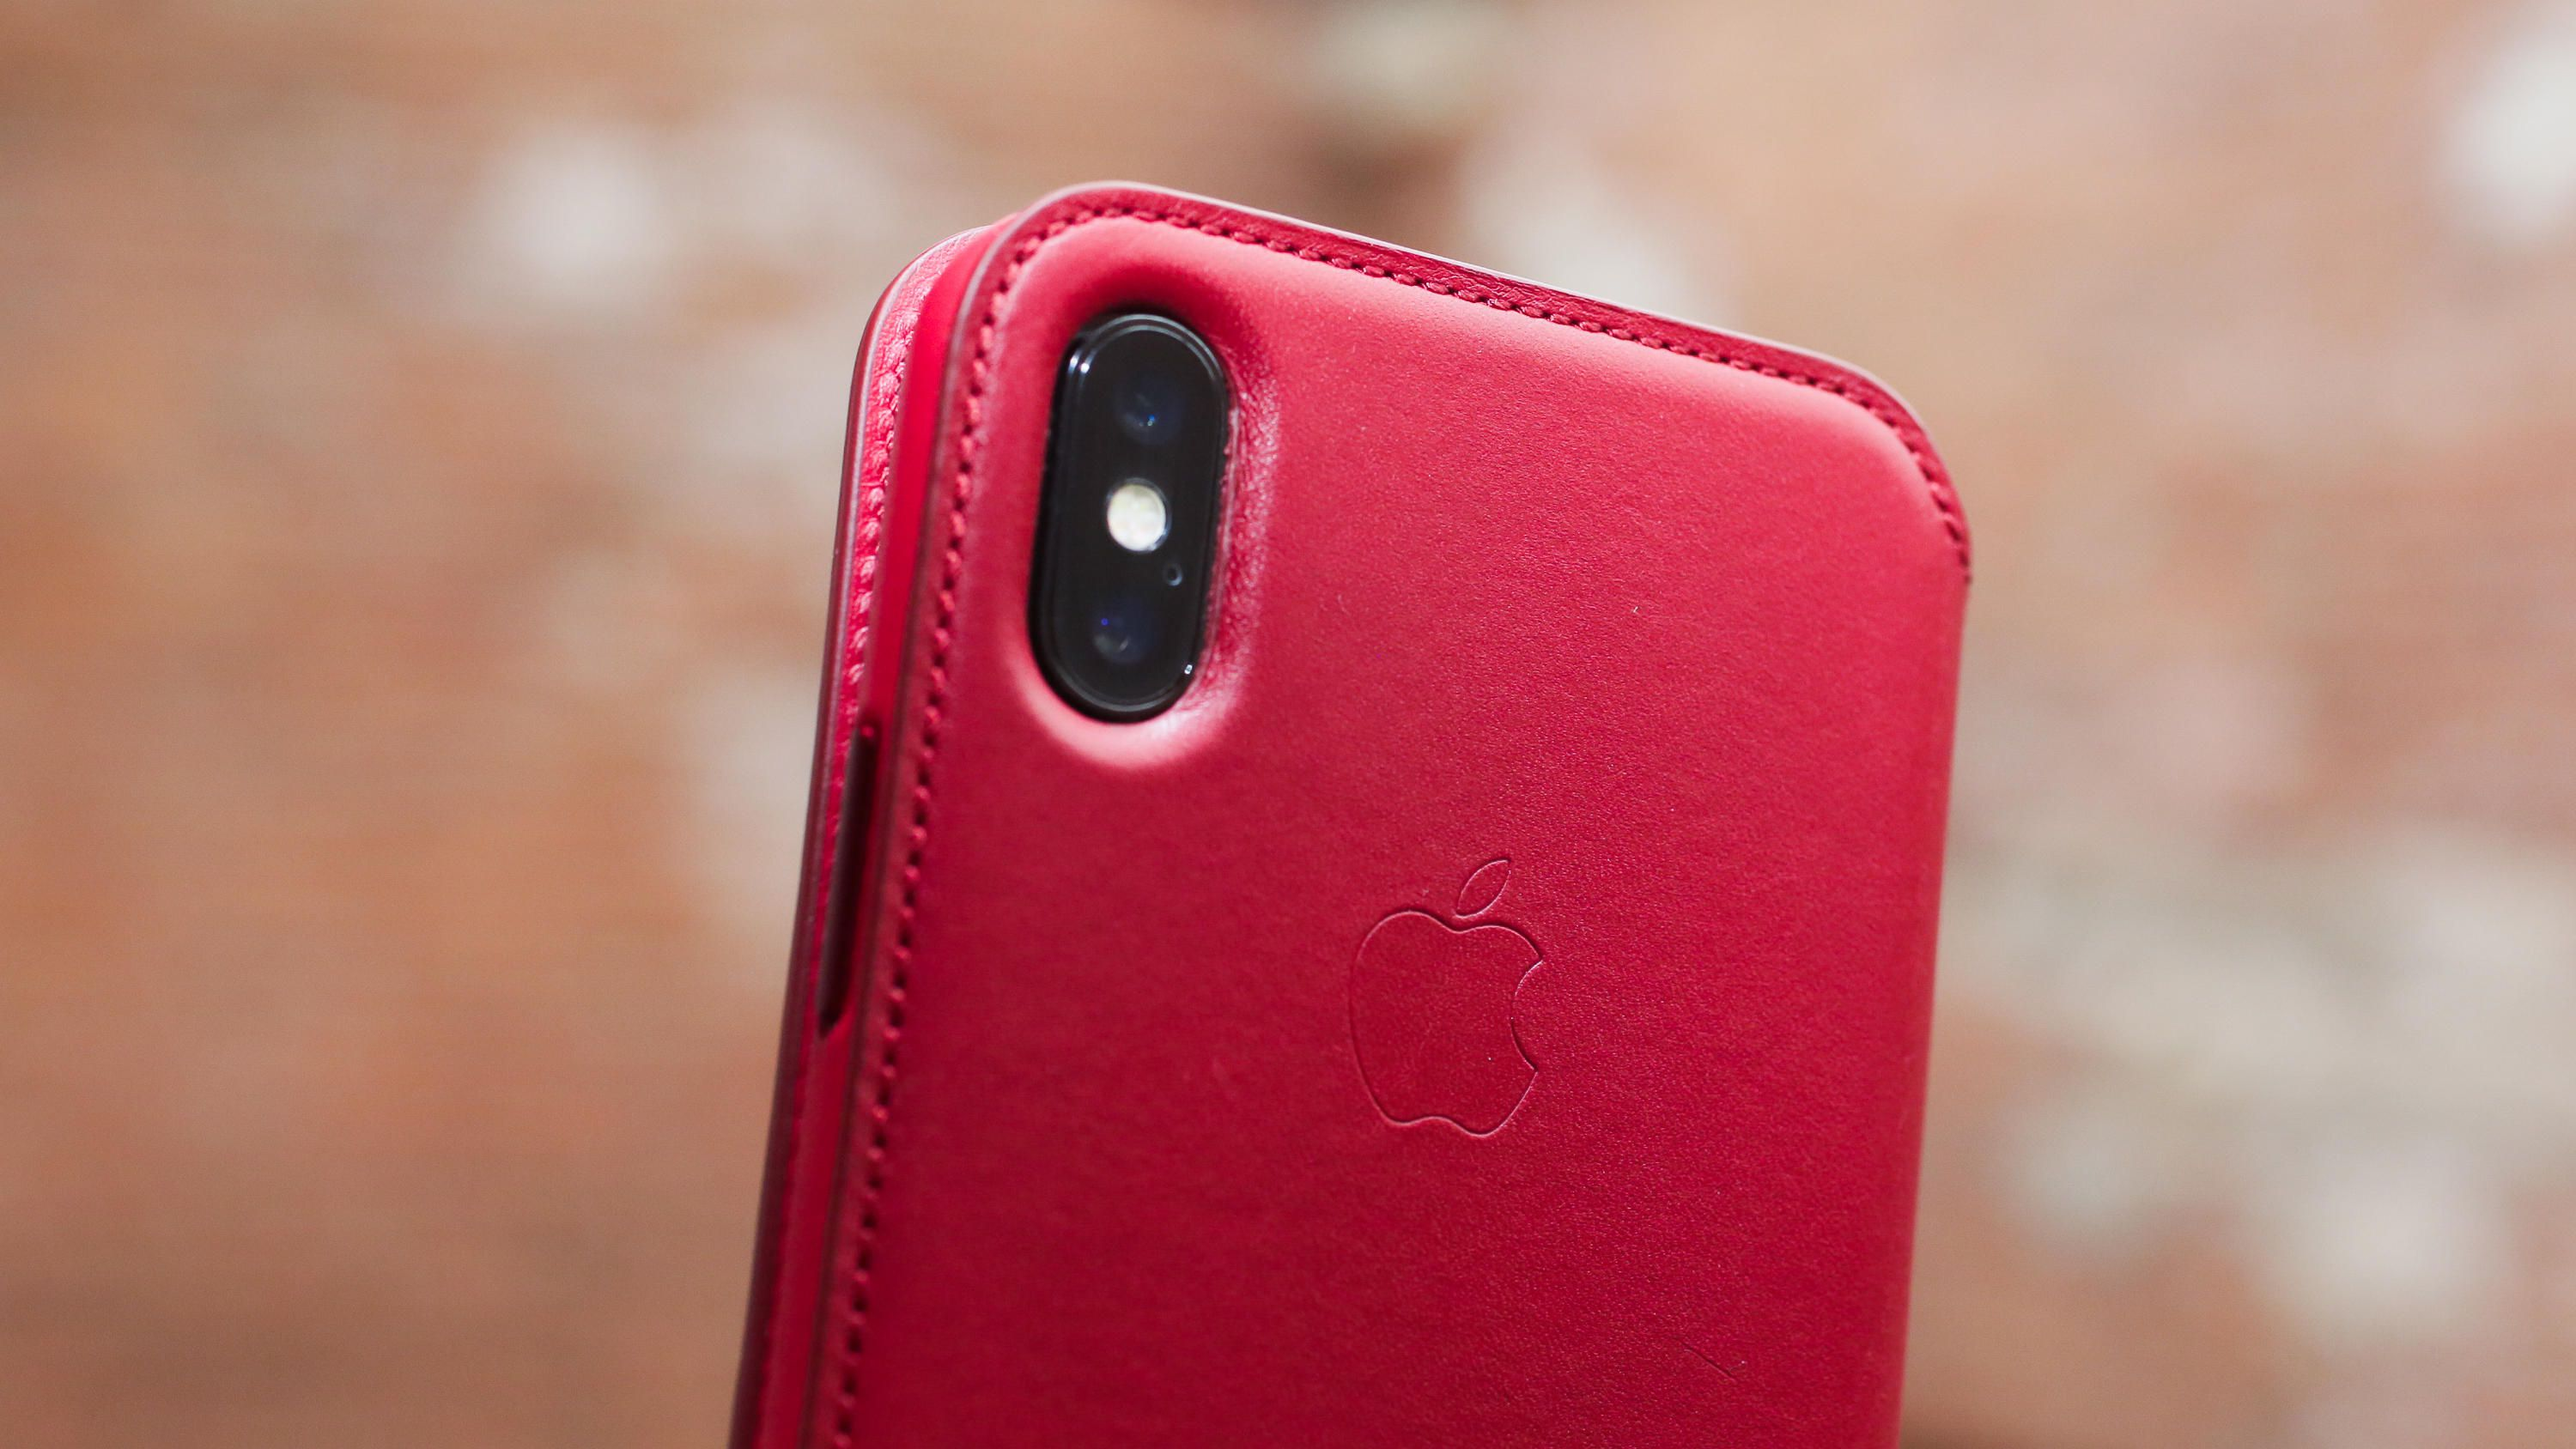 25-iphone-8-and-iphone-8-plus-productred-special-edition-2018